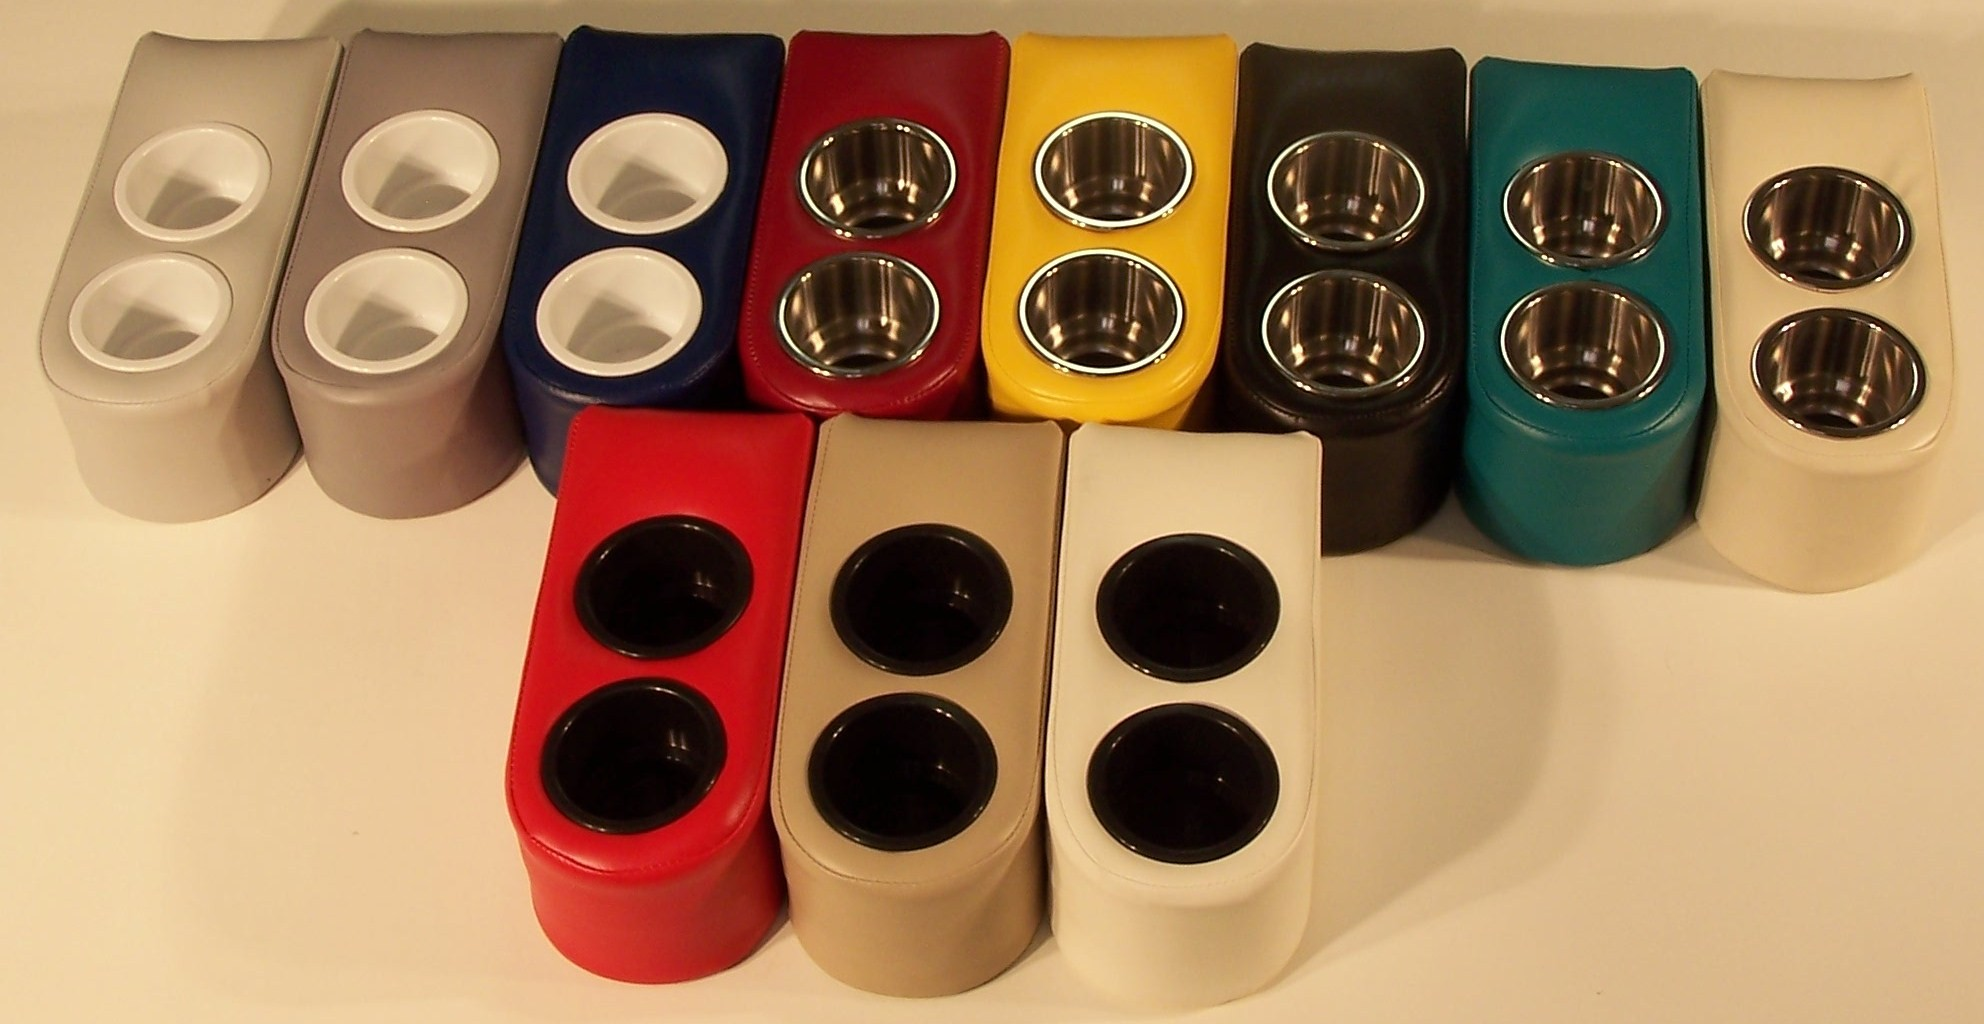 Portable-Floating cup holders